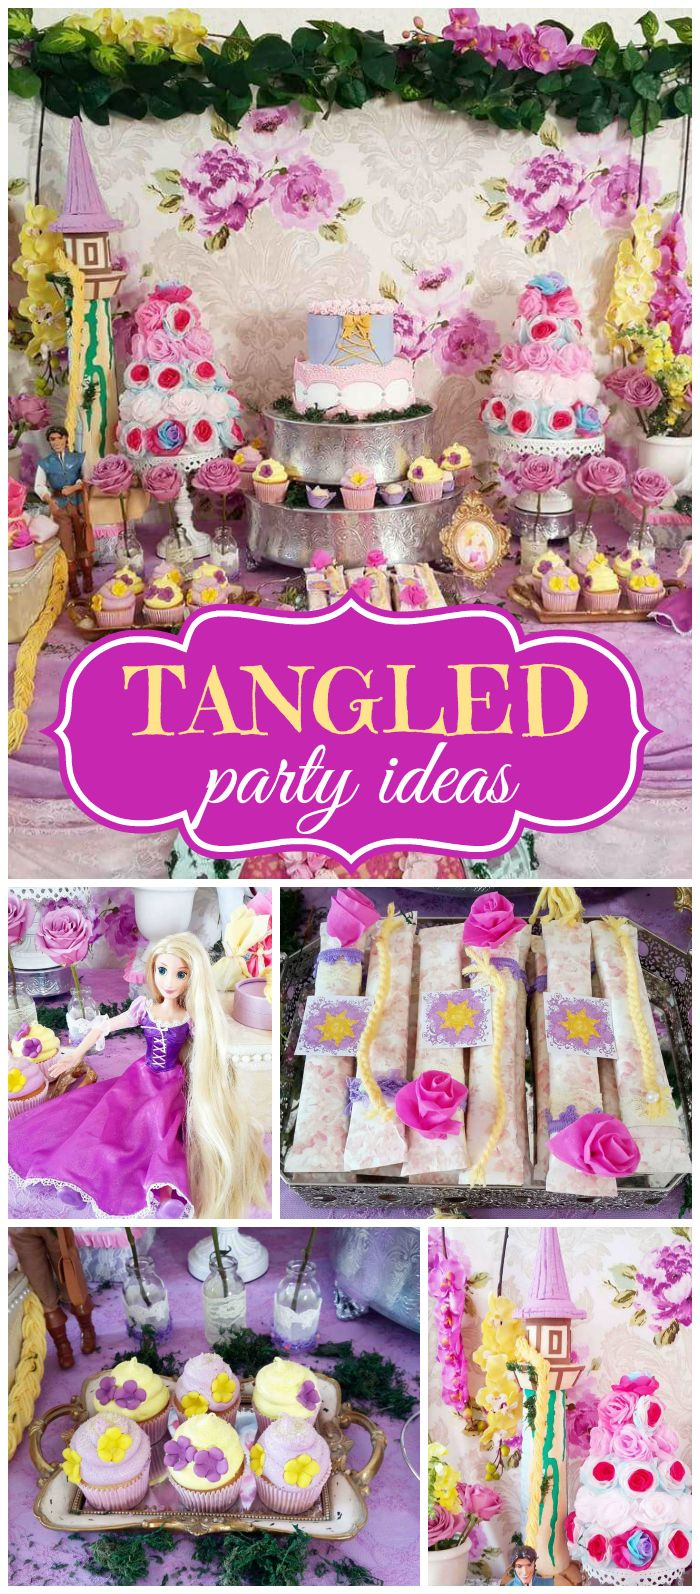 What A Fantastic Tangled Party Such Elaborate Decorations See More Ideas At CatchMyParty